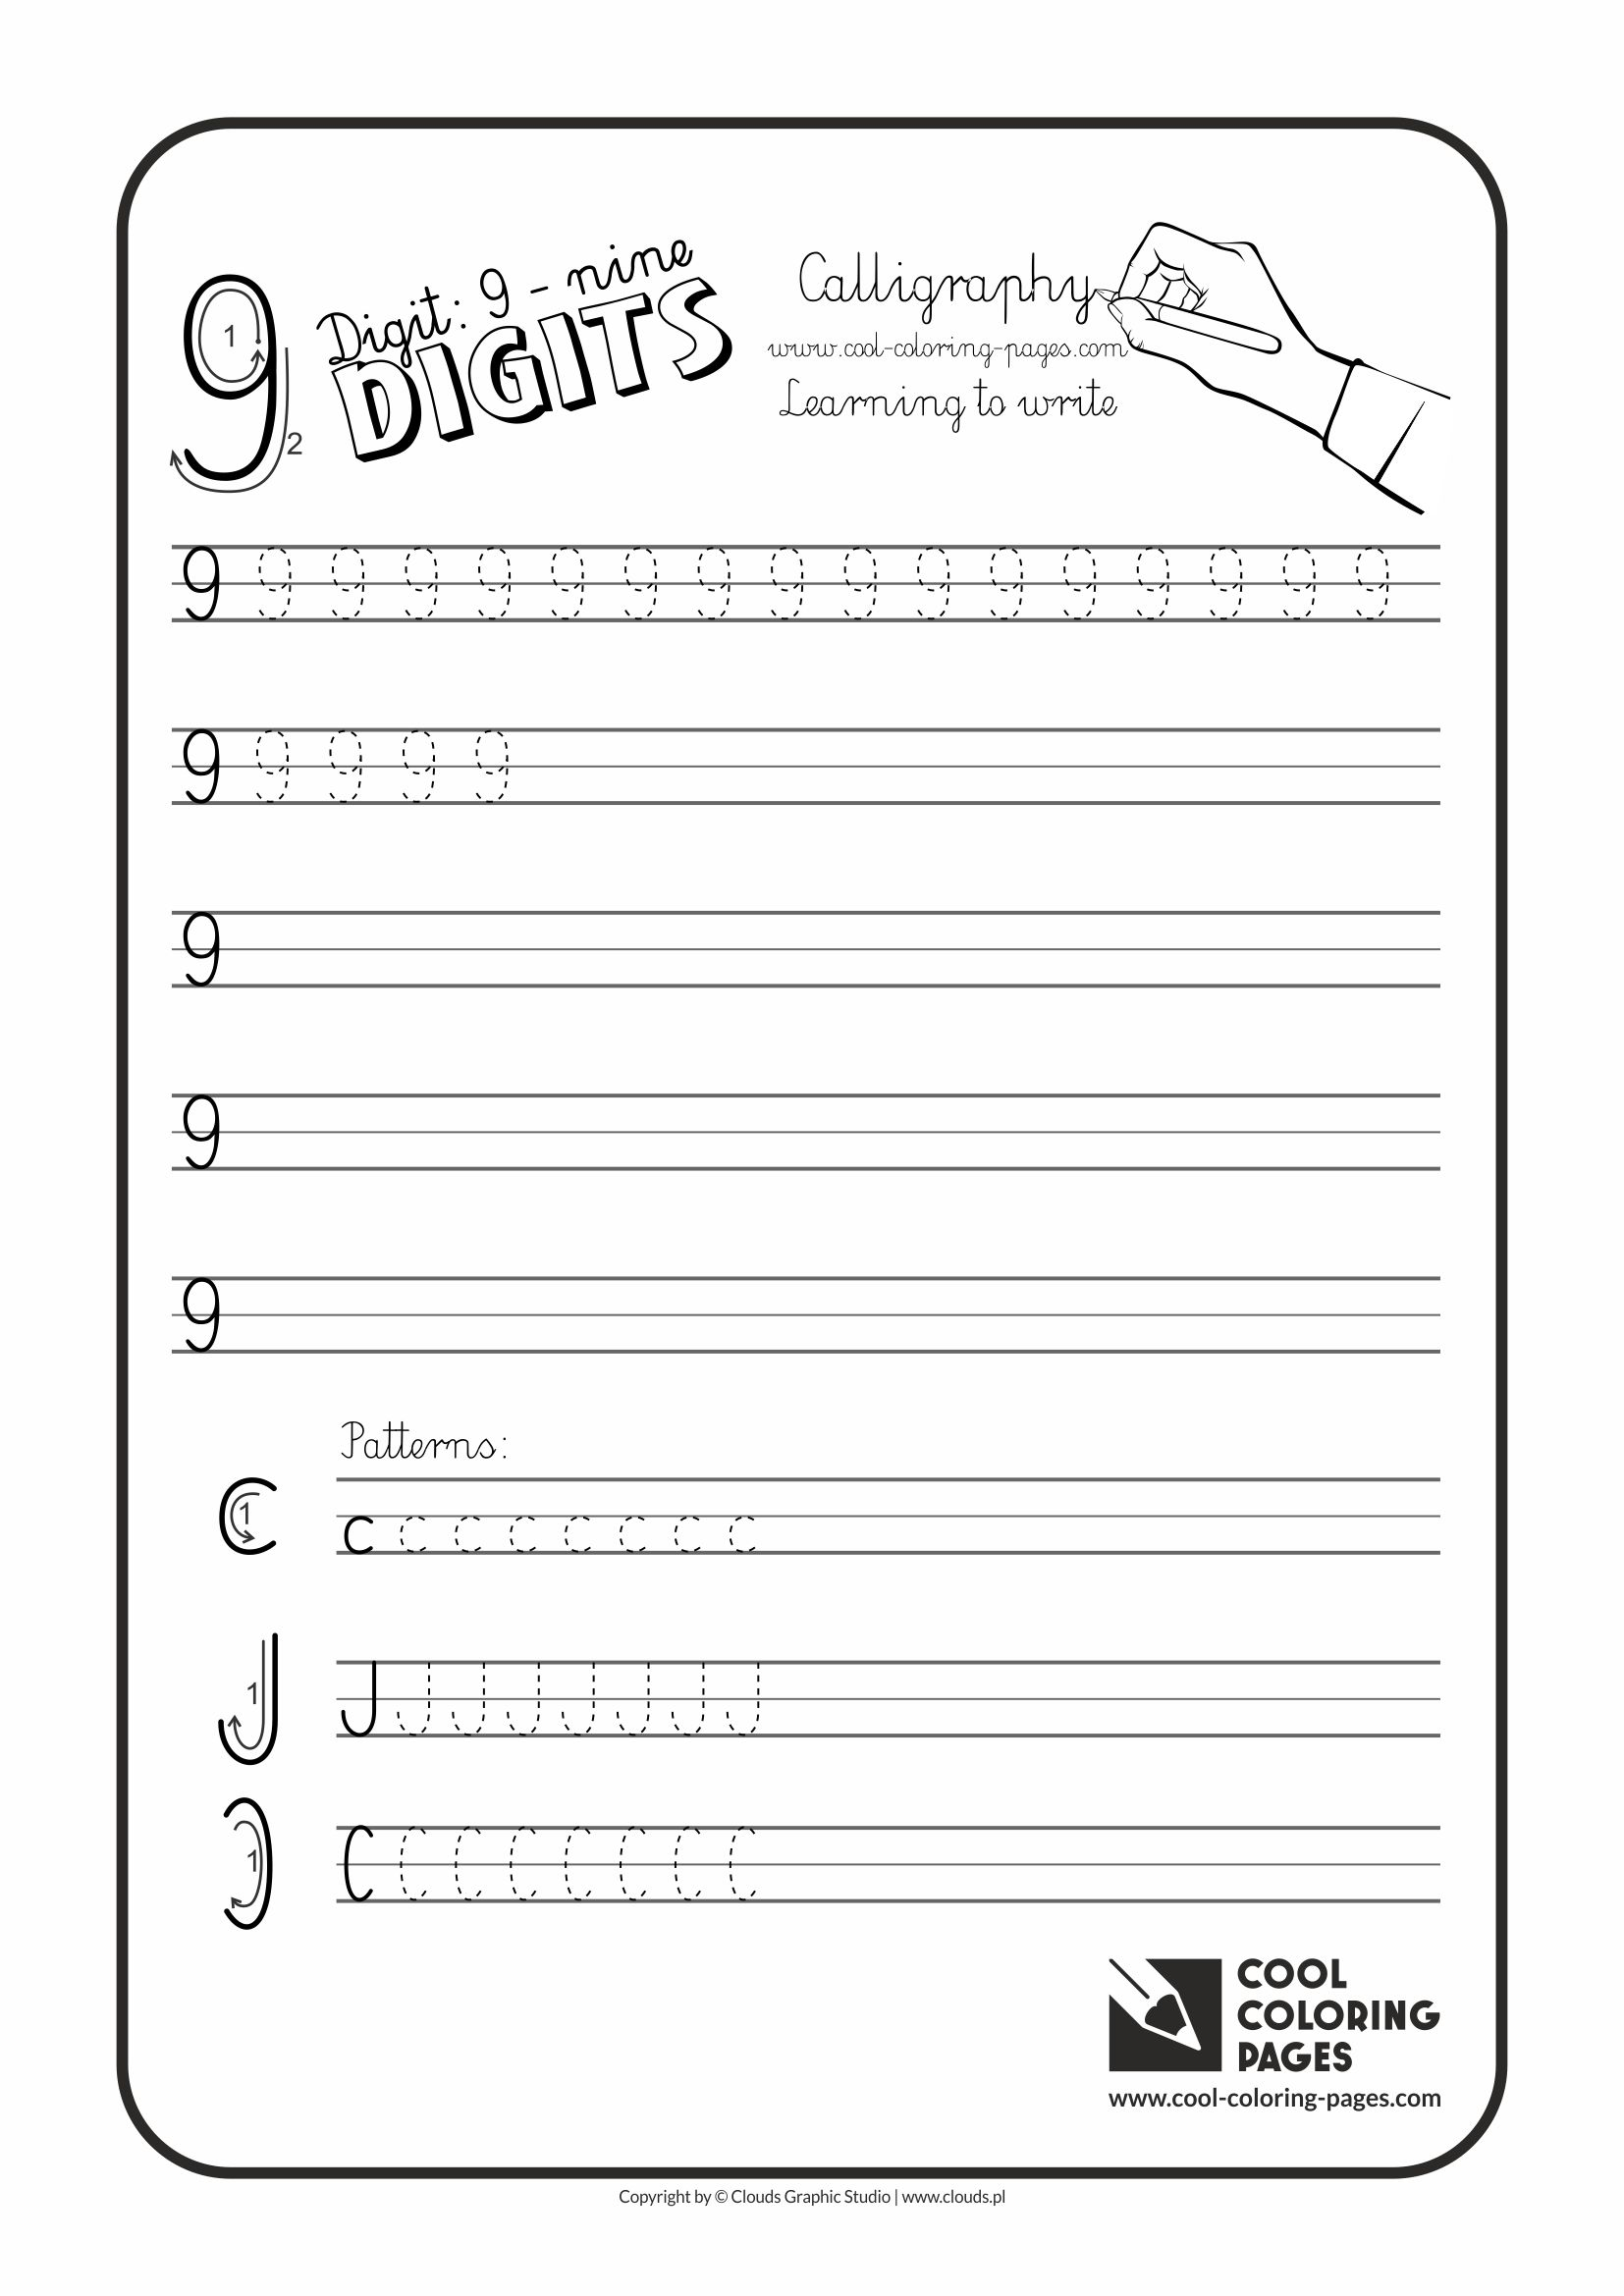 Cool Coloring Pages Digit 9